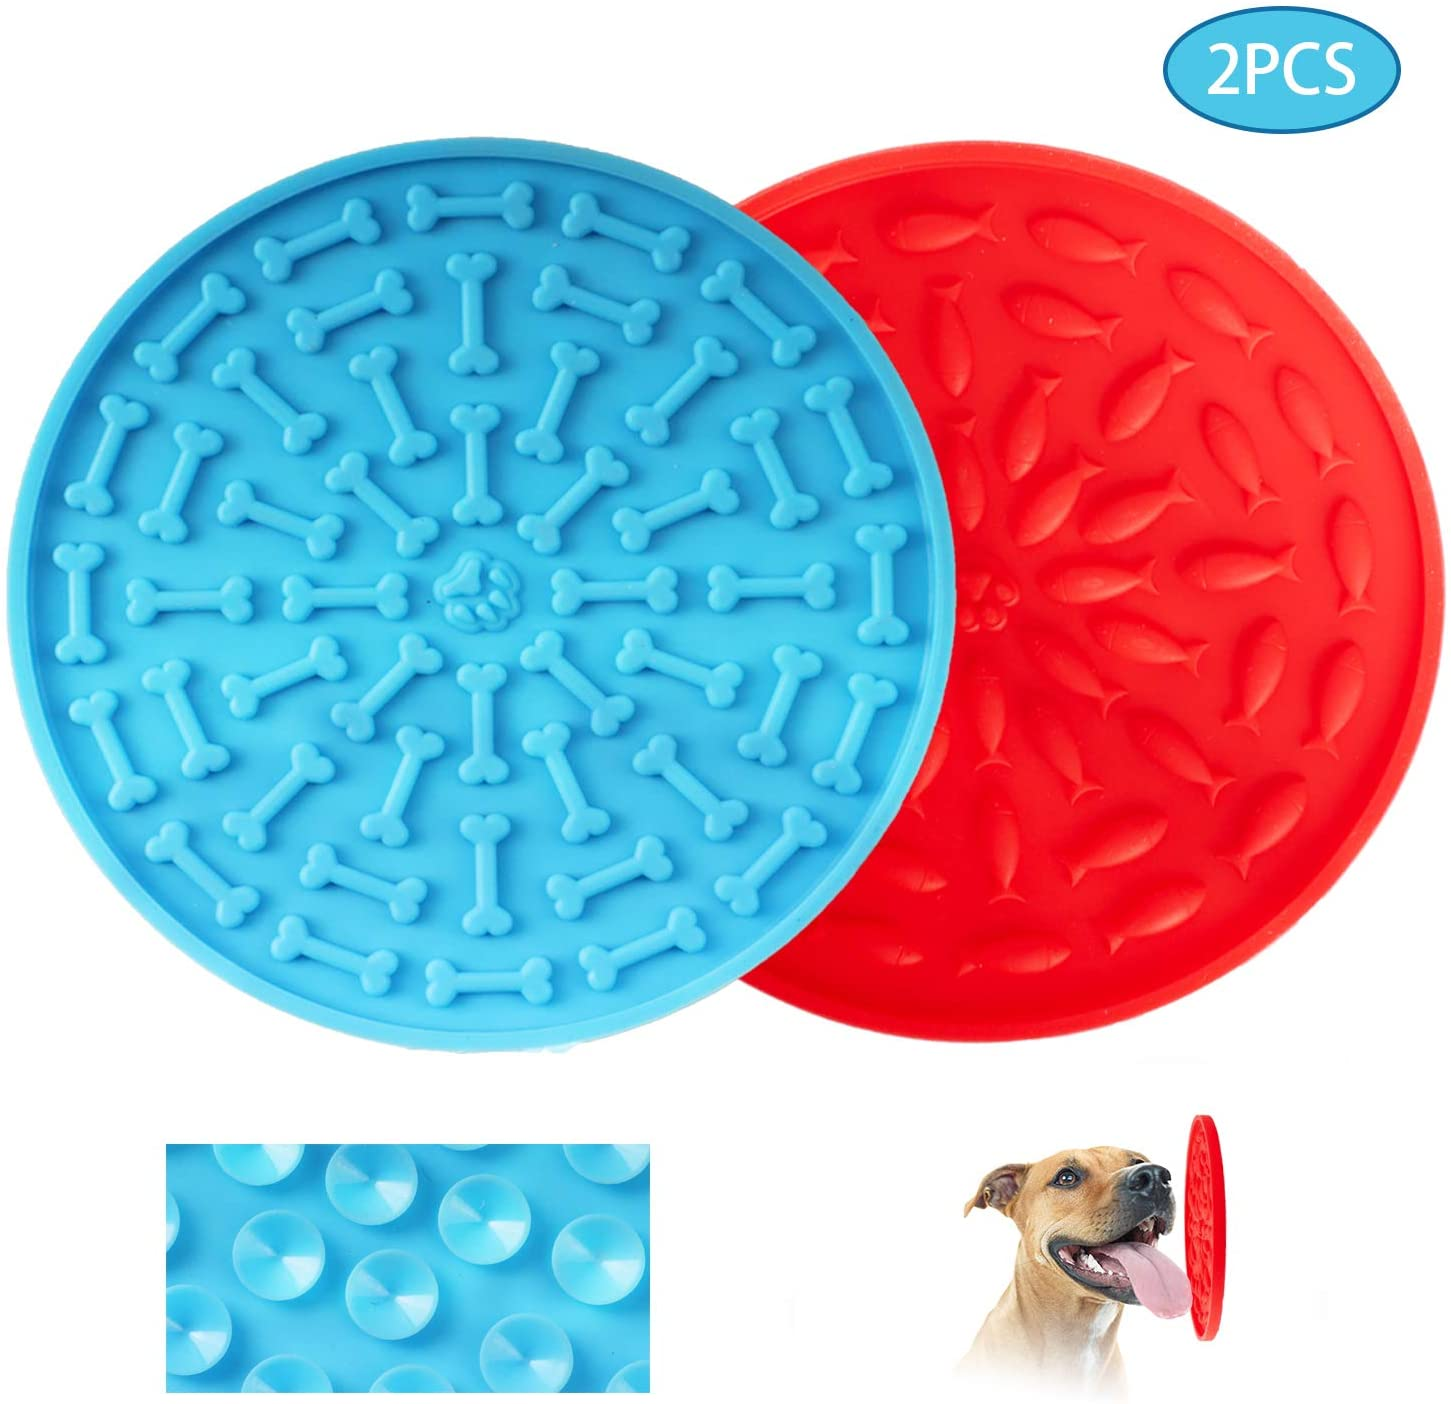 ARSSILEE Dog Lick Pad, Lick Mat with 37 Super Suction for Dogs Bathing Grooming and Training, Durable Silicone Dog Slow Feeder Distraction Device Makes Shower Easy and Funny